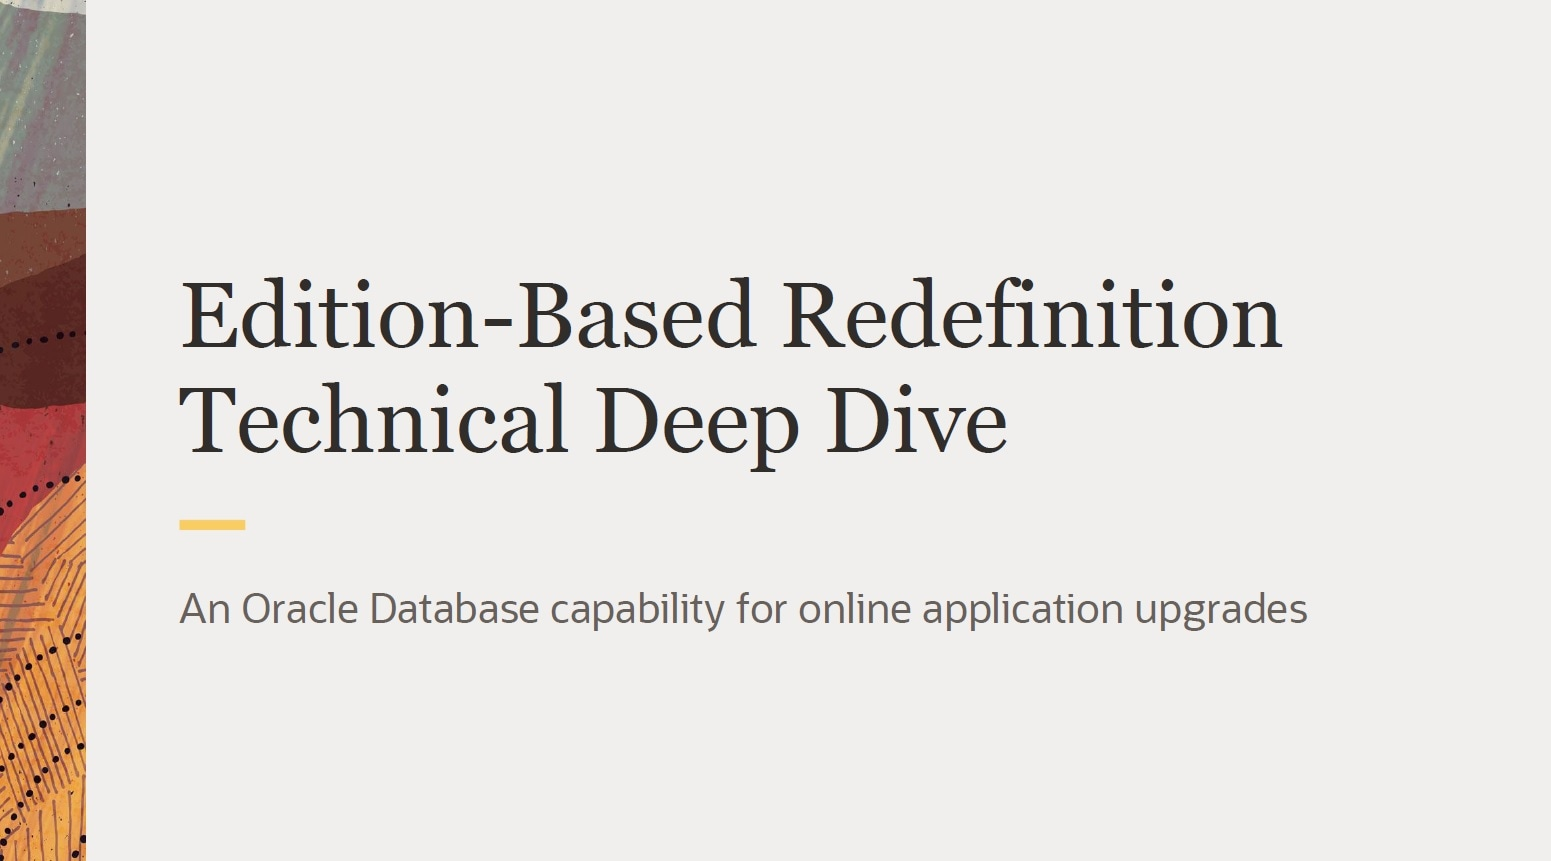 Technical Deep Dive of Edition-Based Redefinition (PDF)